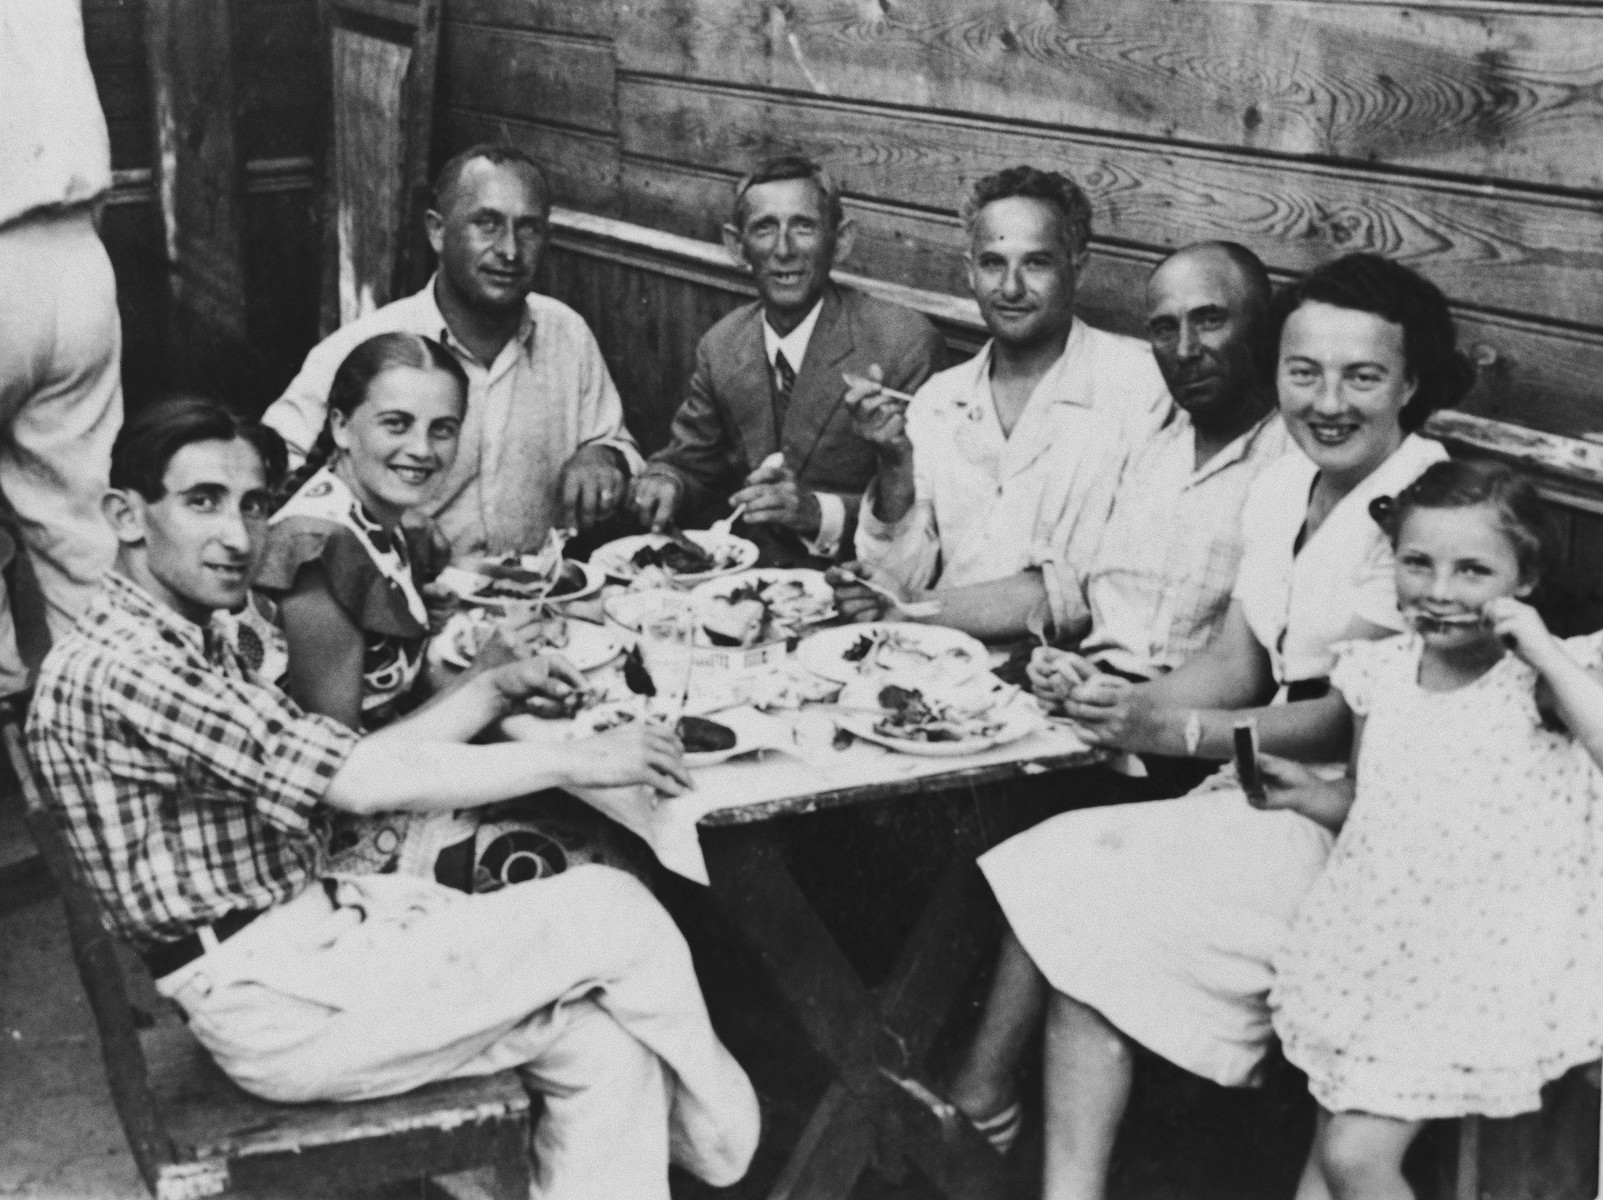 The Storch family vacations with friends in the Chelmski guesthouse in Domaczewo.  Heniek Storch is on the left.  Genia and Helena are seated on the right.